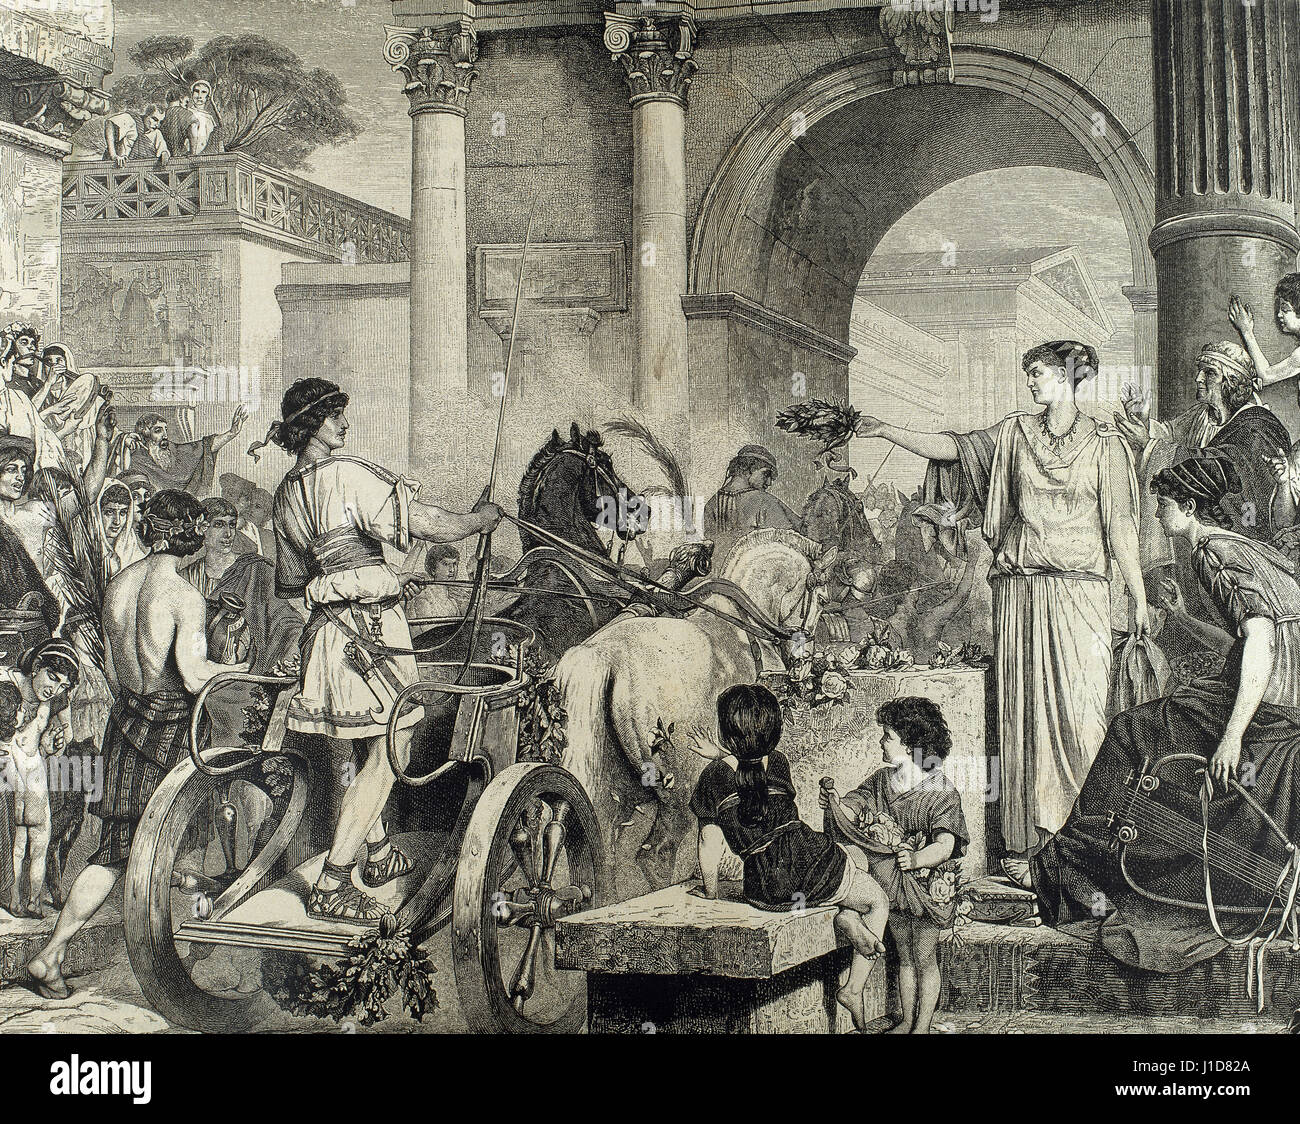 Ancient Greece. Olympic Games. Entrance of the winner in chariot racing. Engraving. - Stock Image